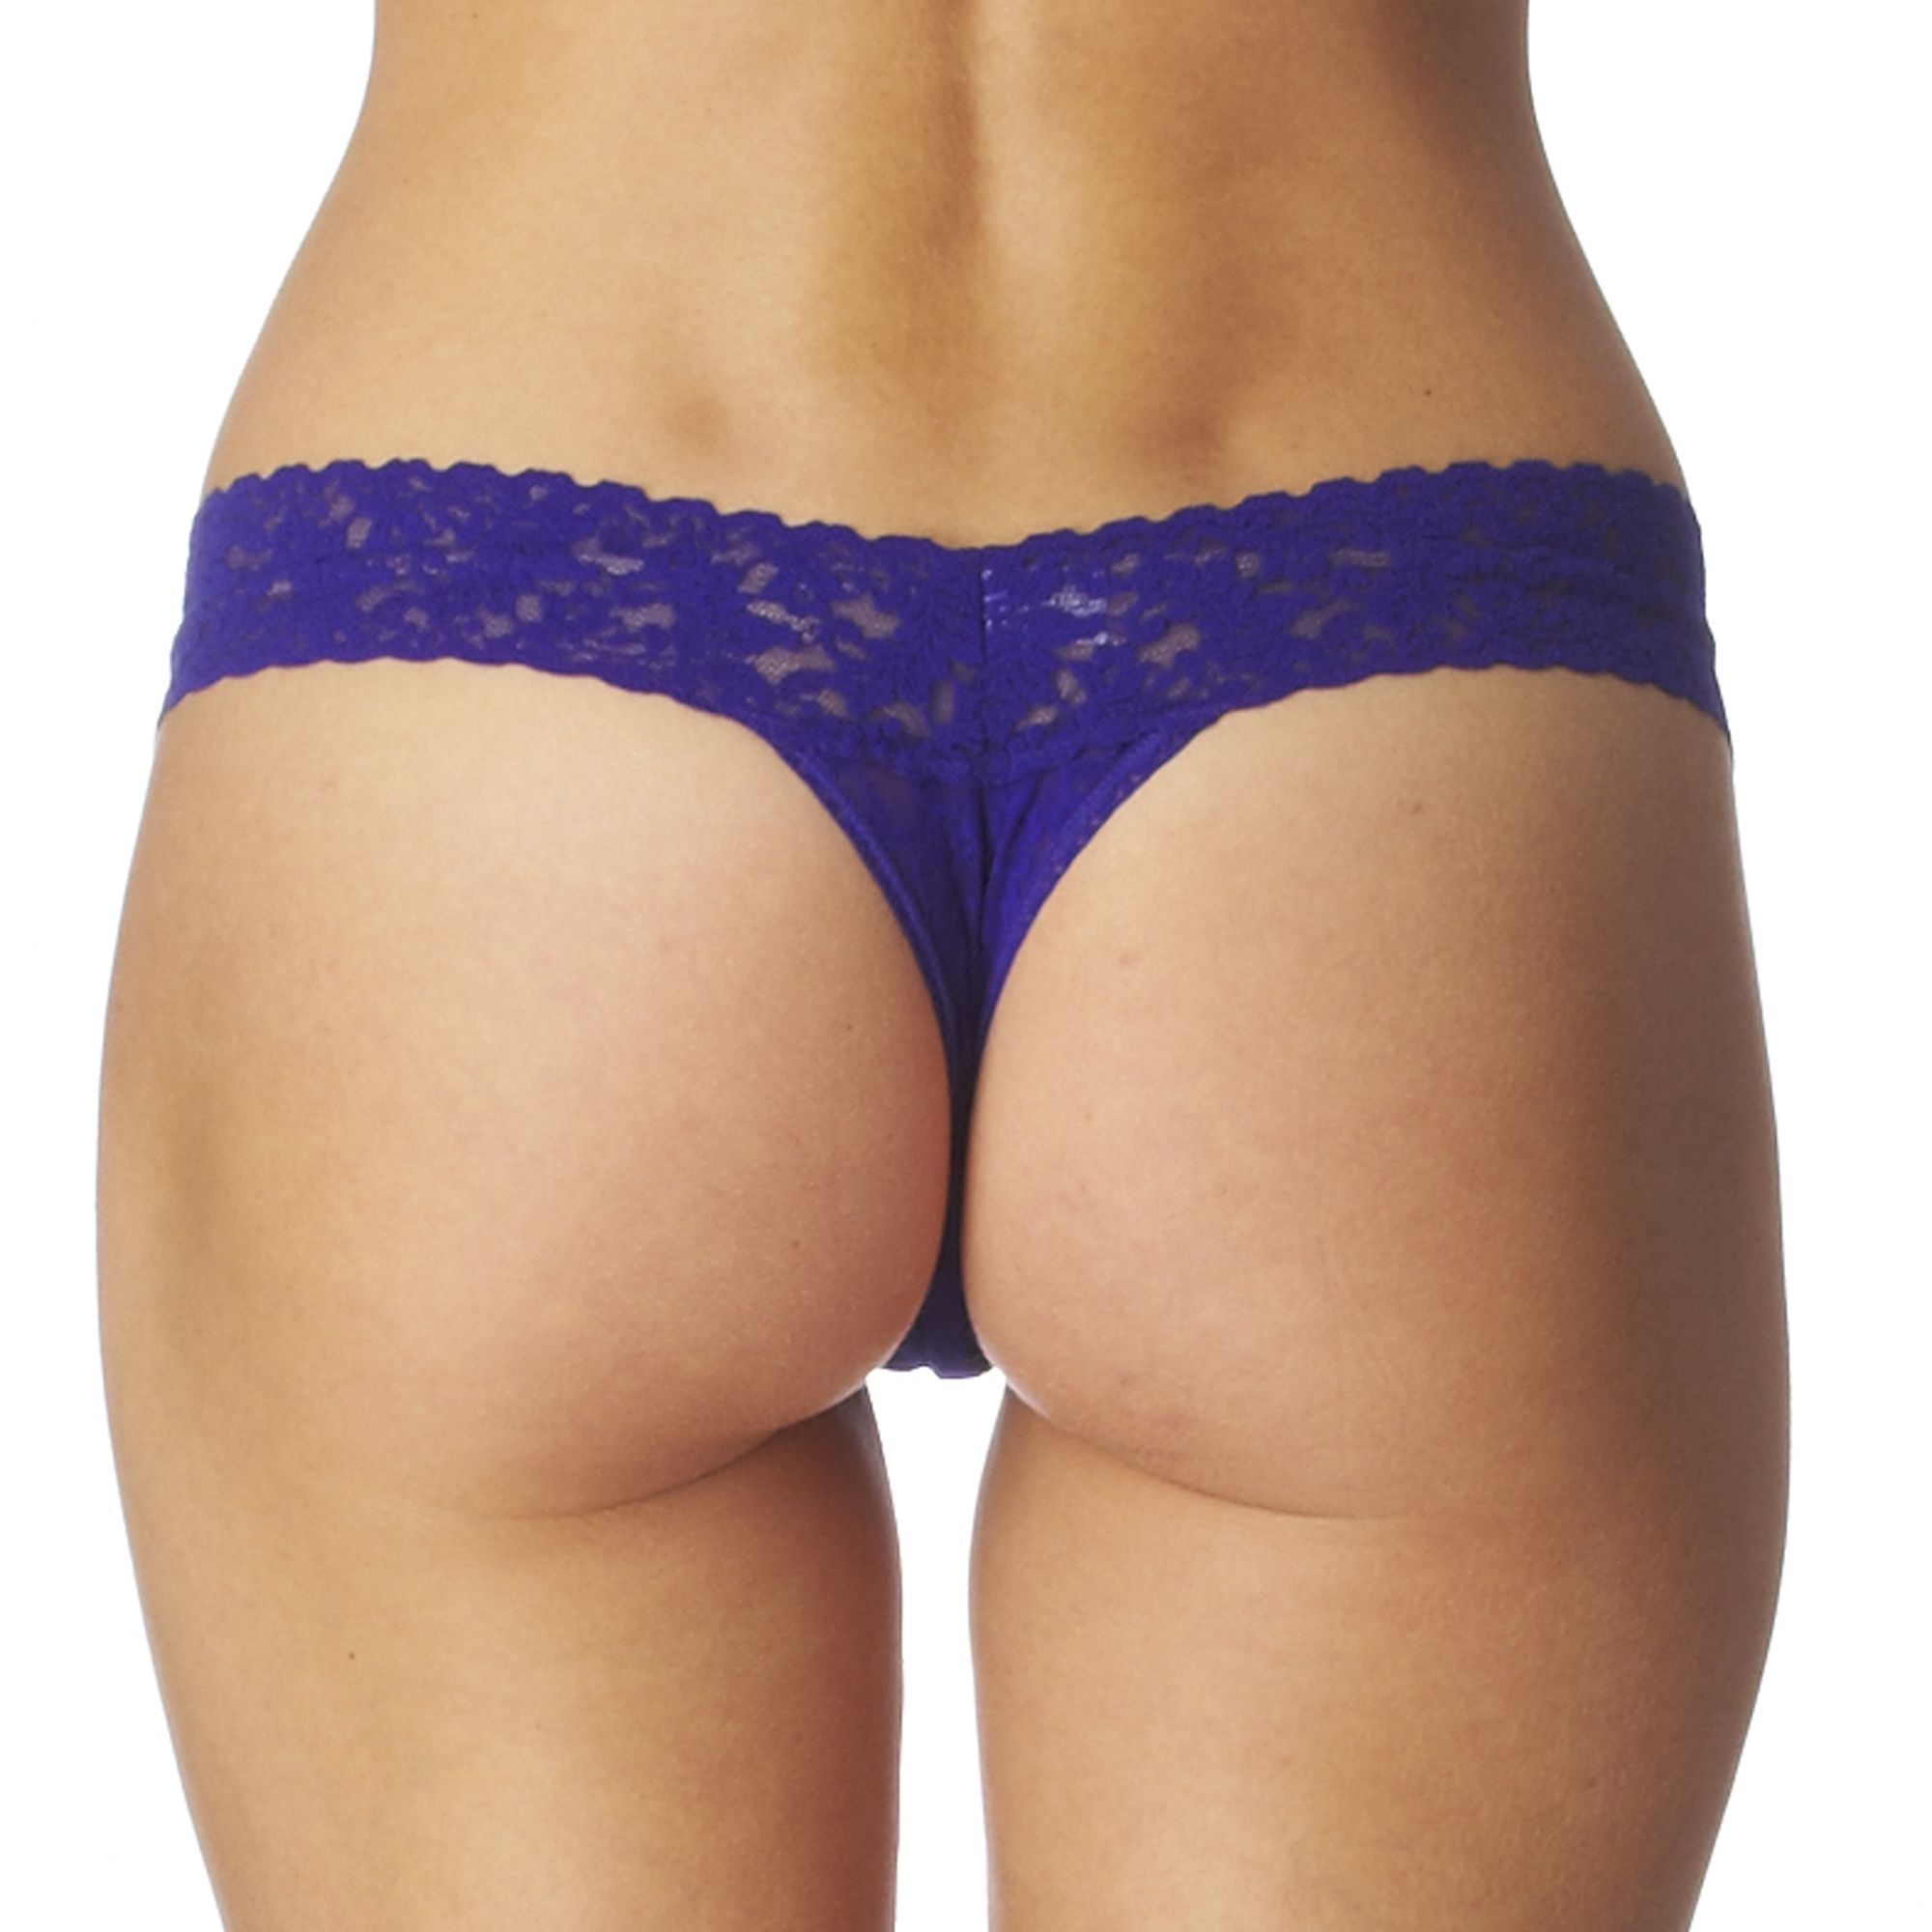 Blue Thong Society, Encinitas, CA. K likes. BTS is an international network of over 5, women 21 and up. Our philosophy is Good Fun, Good Friends.